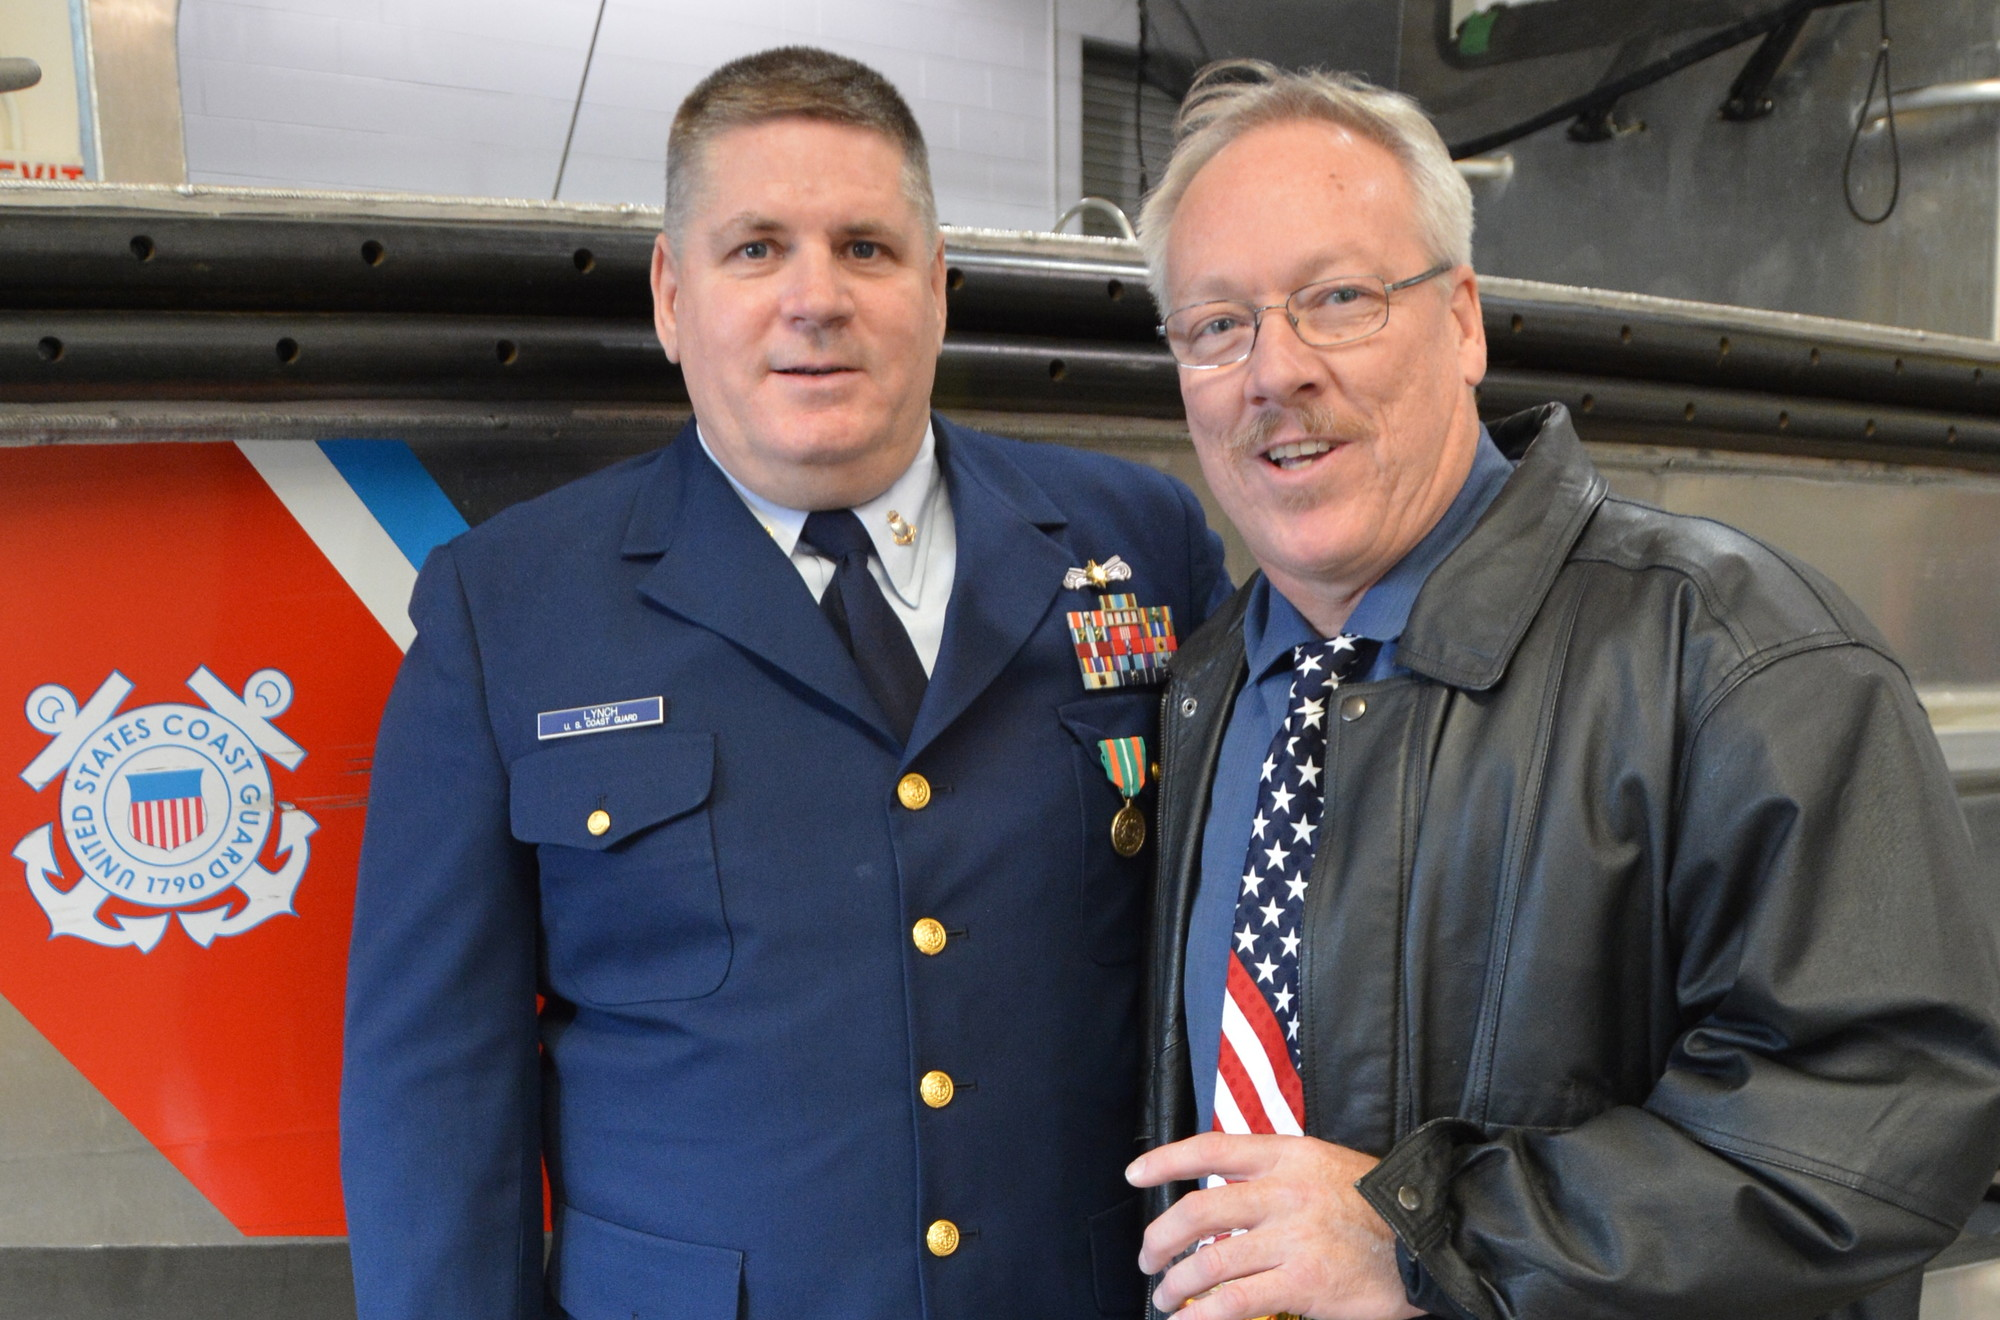 Lynch posed with longtime friend, Eric Mathison, right, with whom he joined the U.S. Coast Guard in 1982 after graduating Baldwin High School.